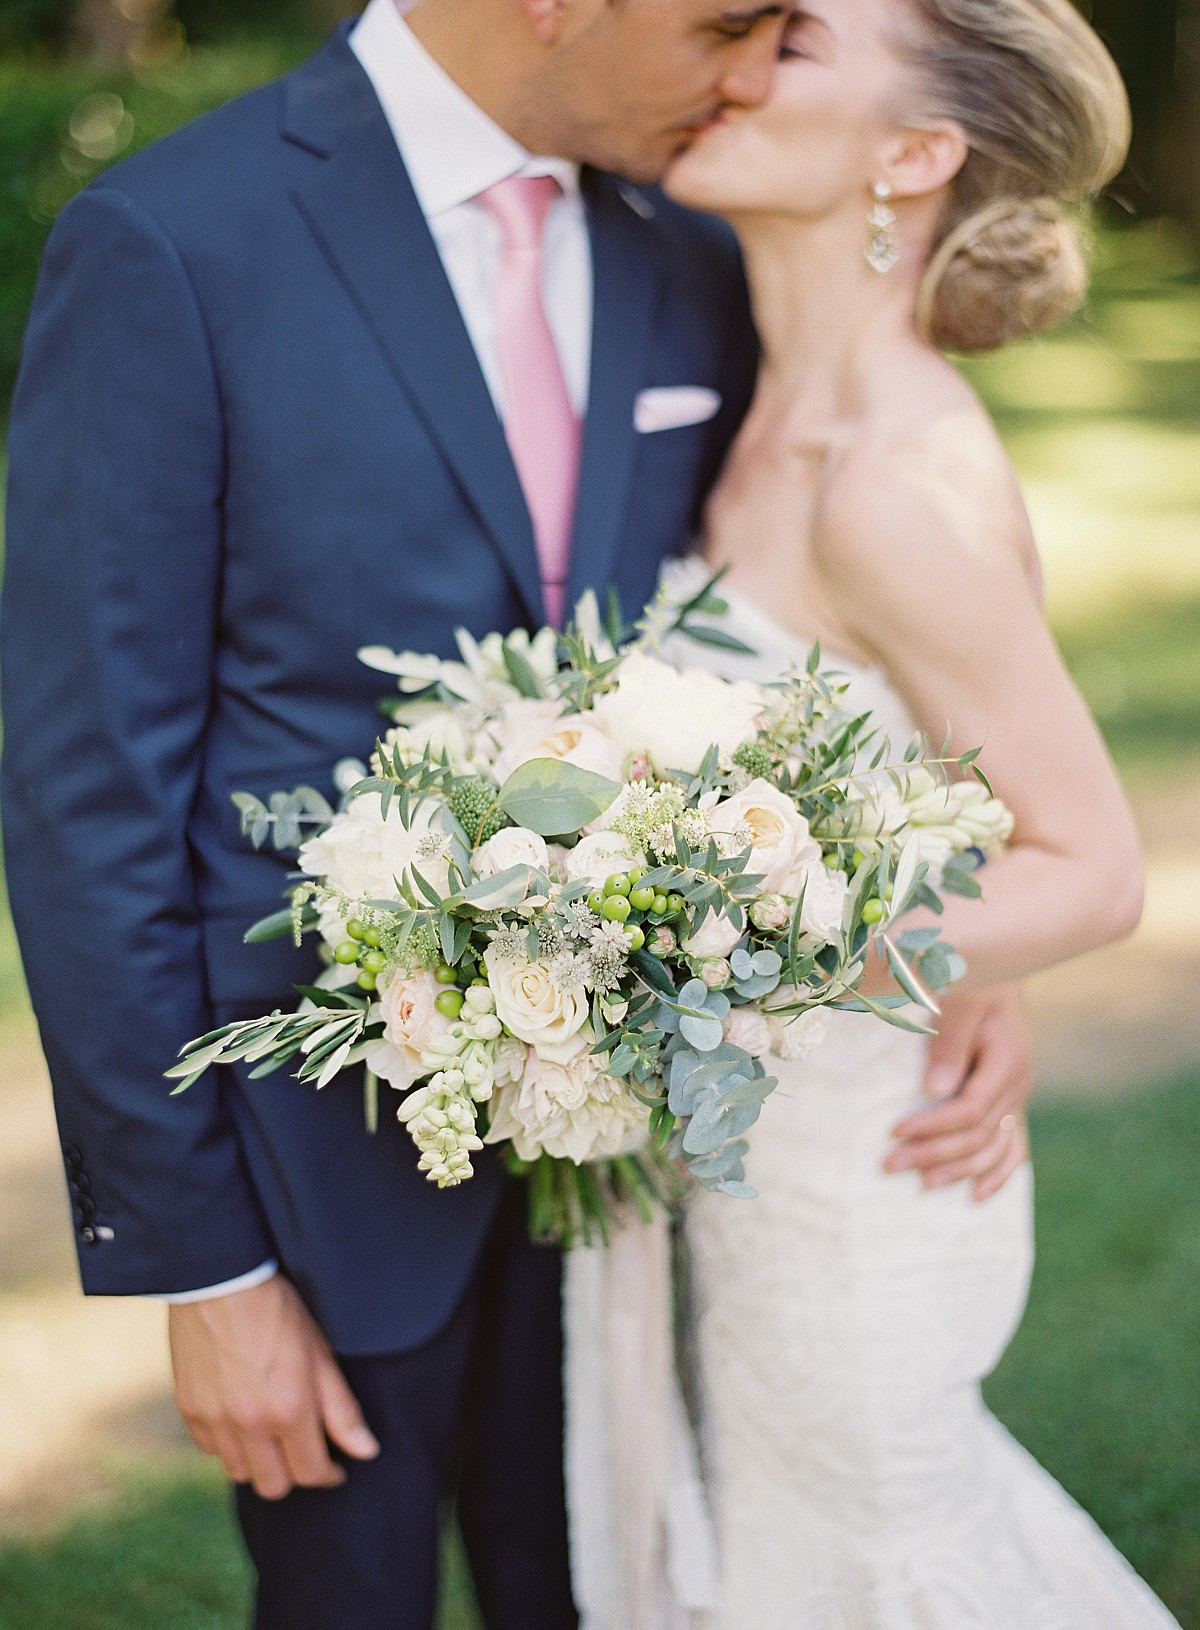 Tana and Benoit's Elegant Outdoor French Chateau Wedding